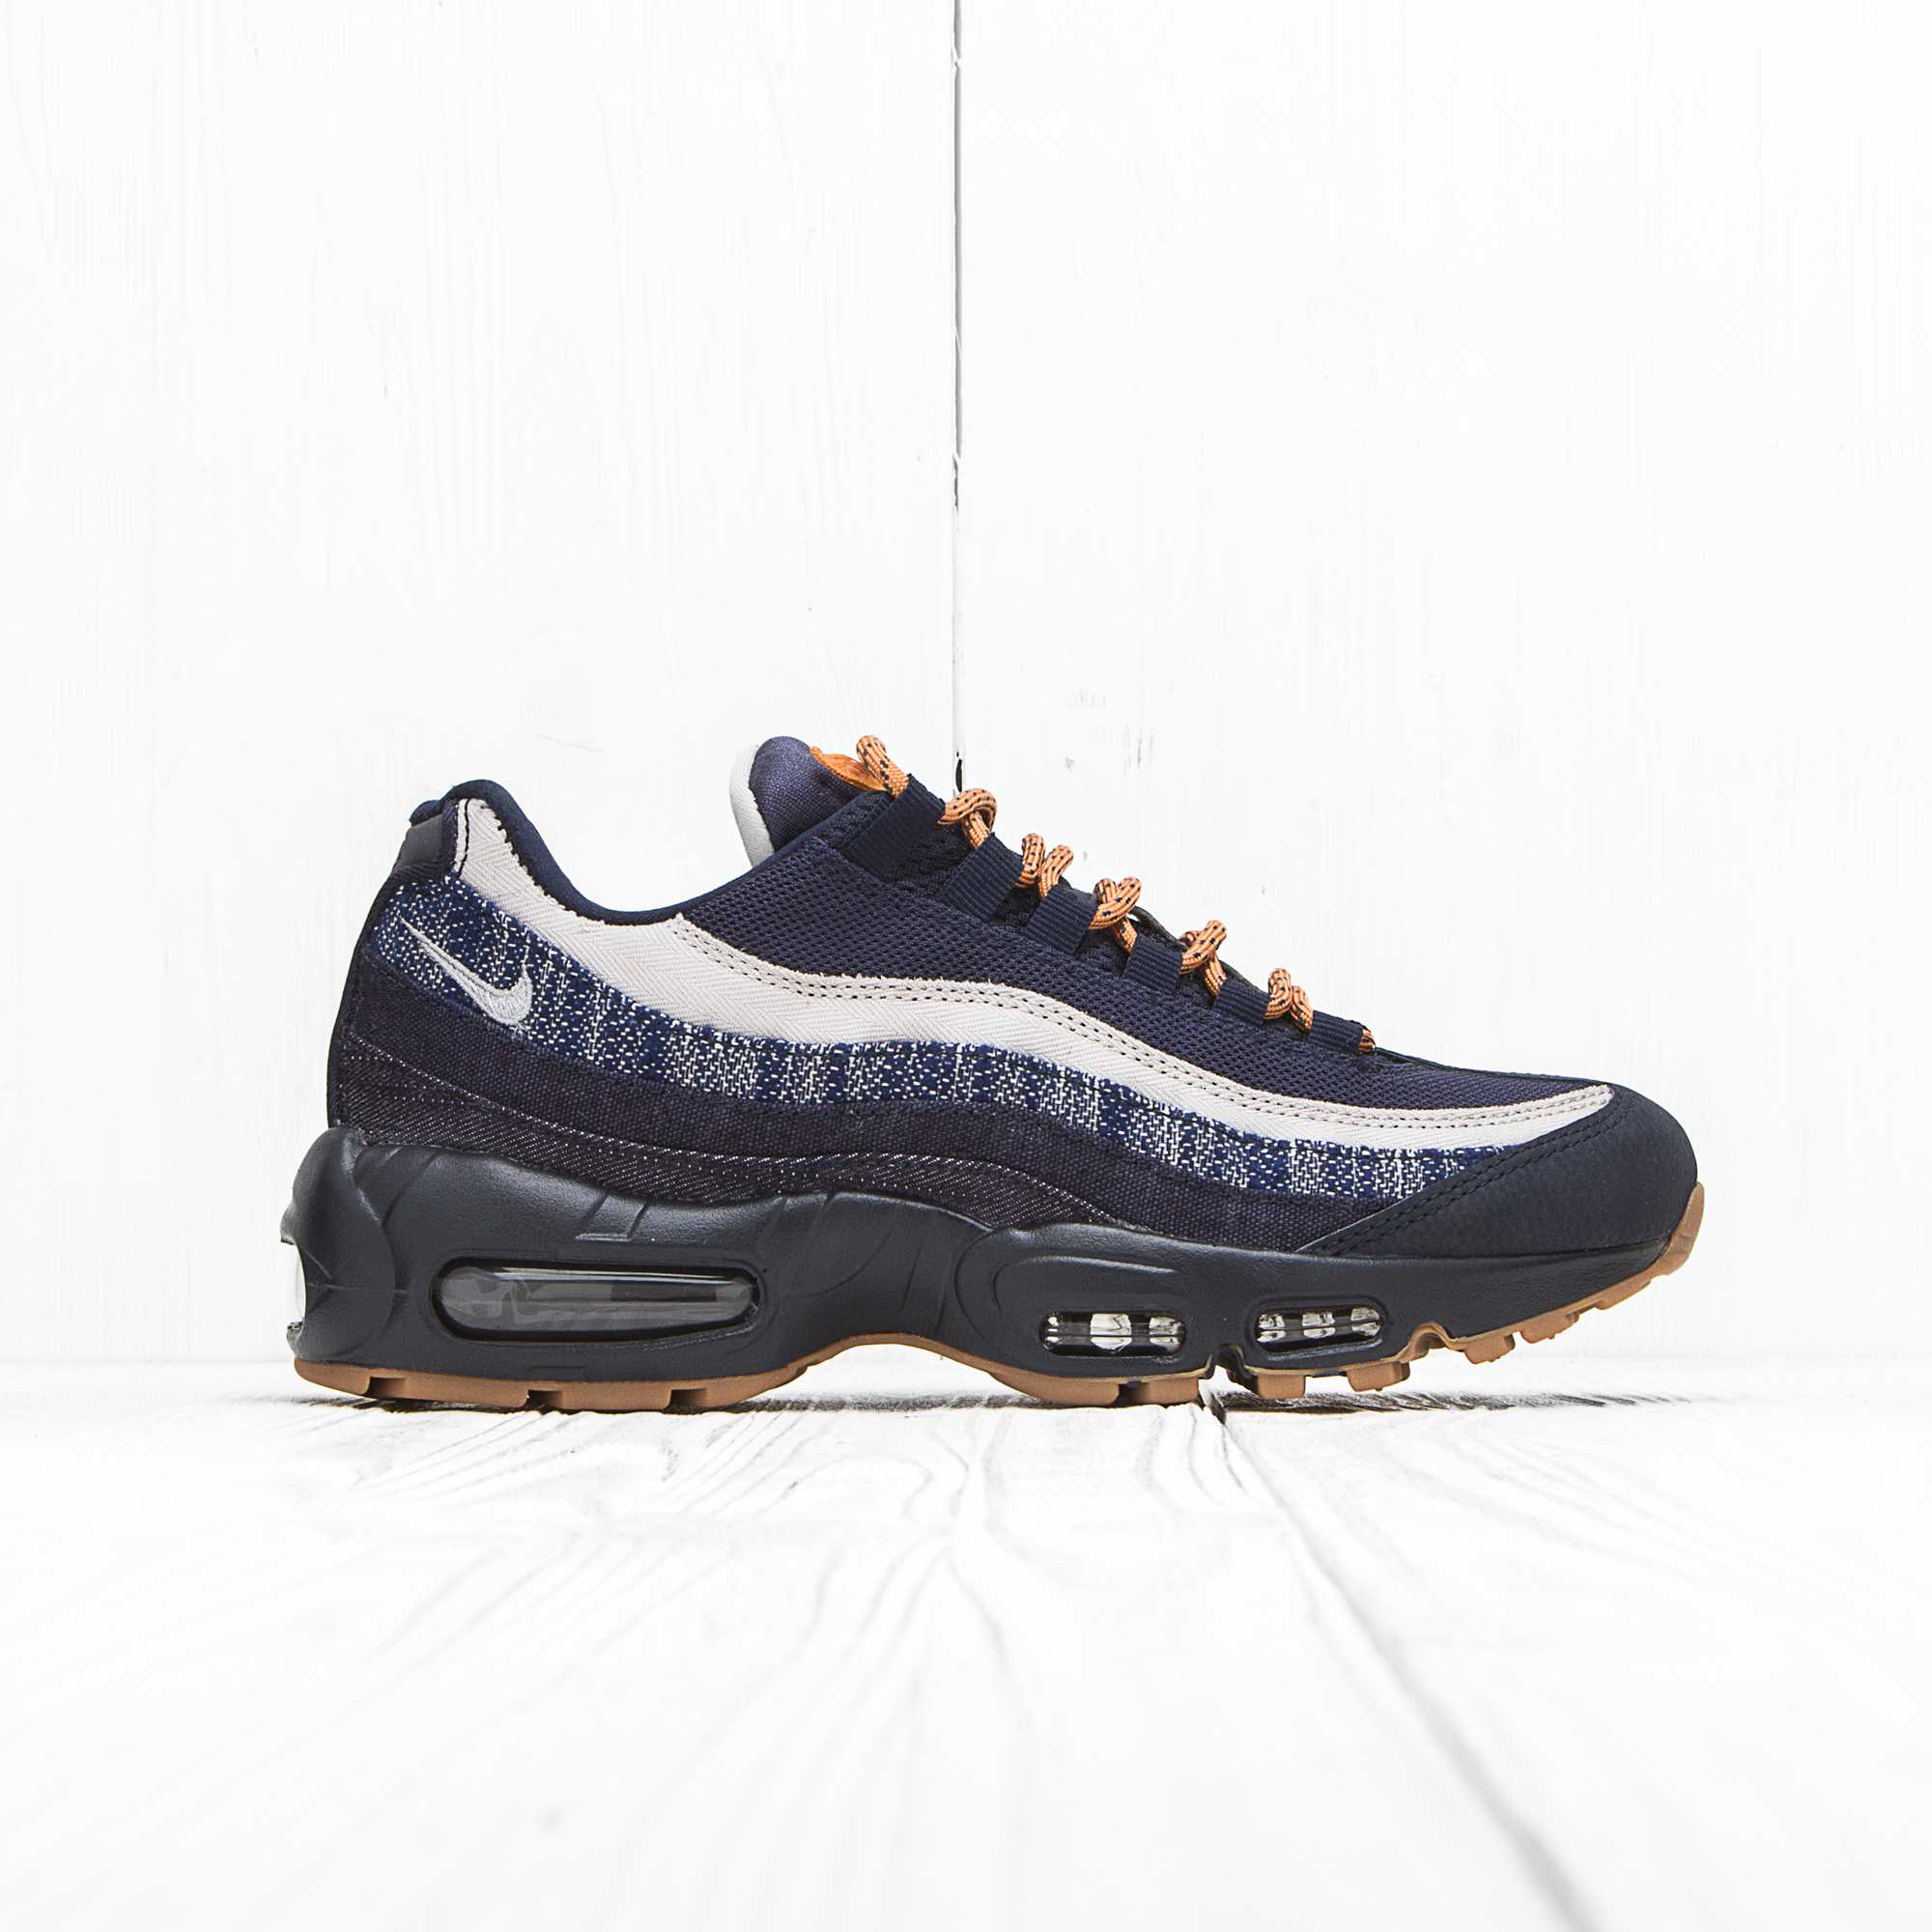 Кроссовки Nike AIR MAX 95 PRM Dark Obsidian/Granite-Gum Light Brown